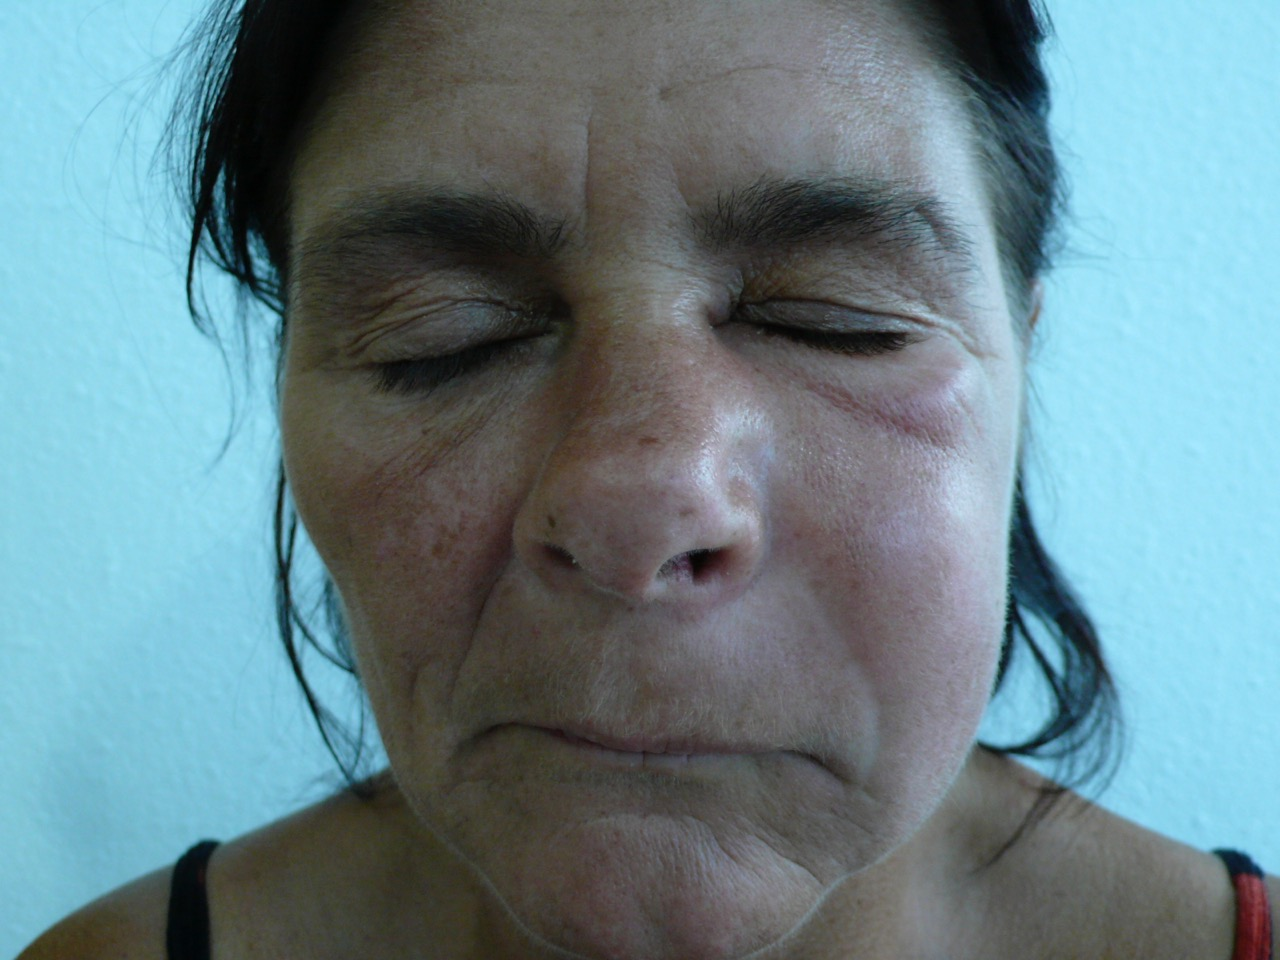 Jaw Bone Infection - face swelling